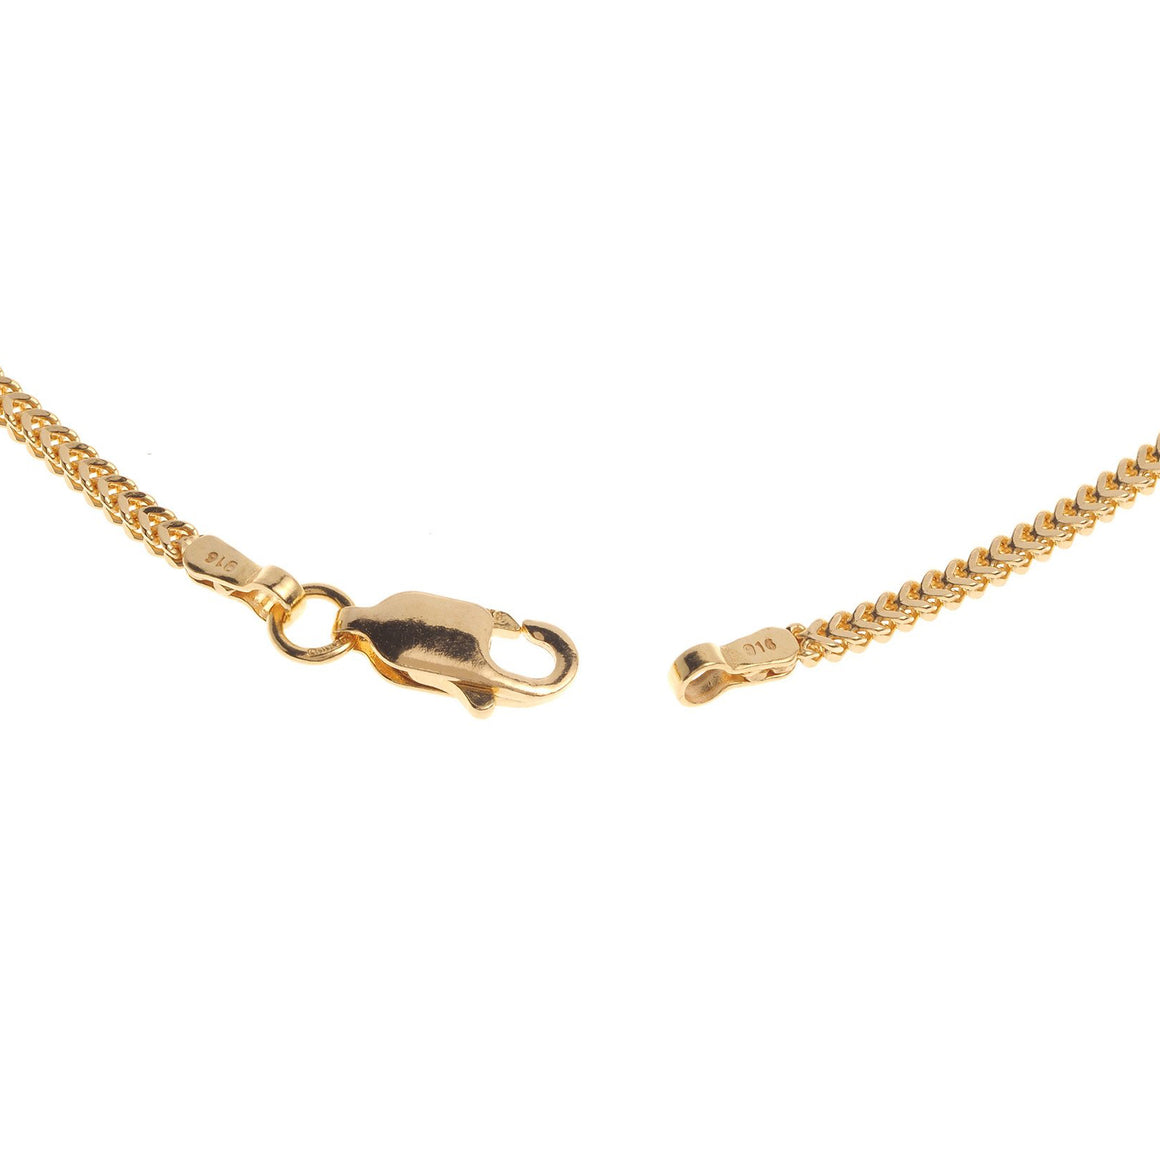 22ct Gold Foxtail Chain with a lobster clasp (C-3796)